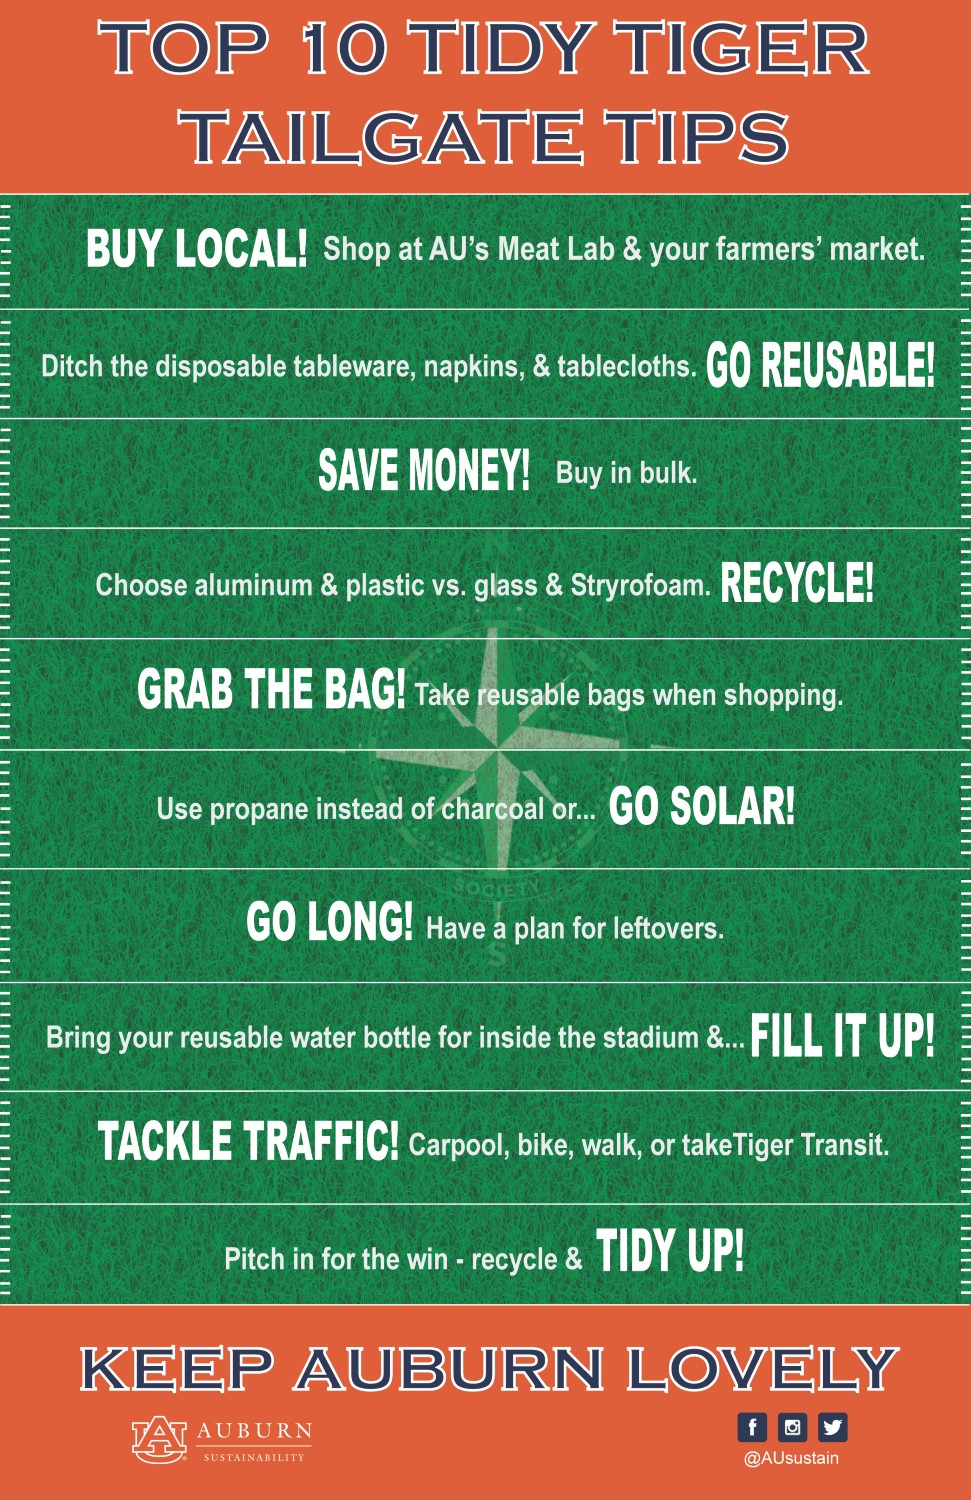 Graphic with Top 10 Tidy Tiger Tailgate Tips